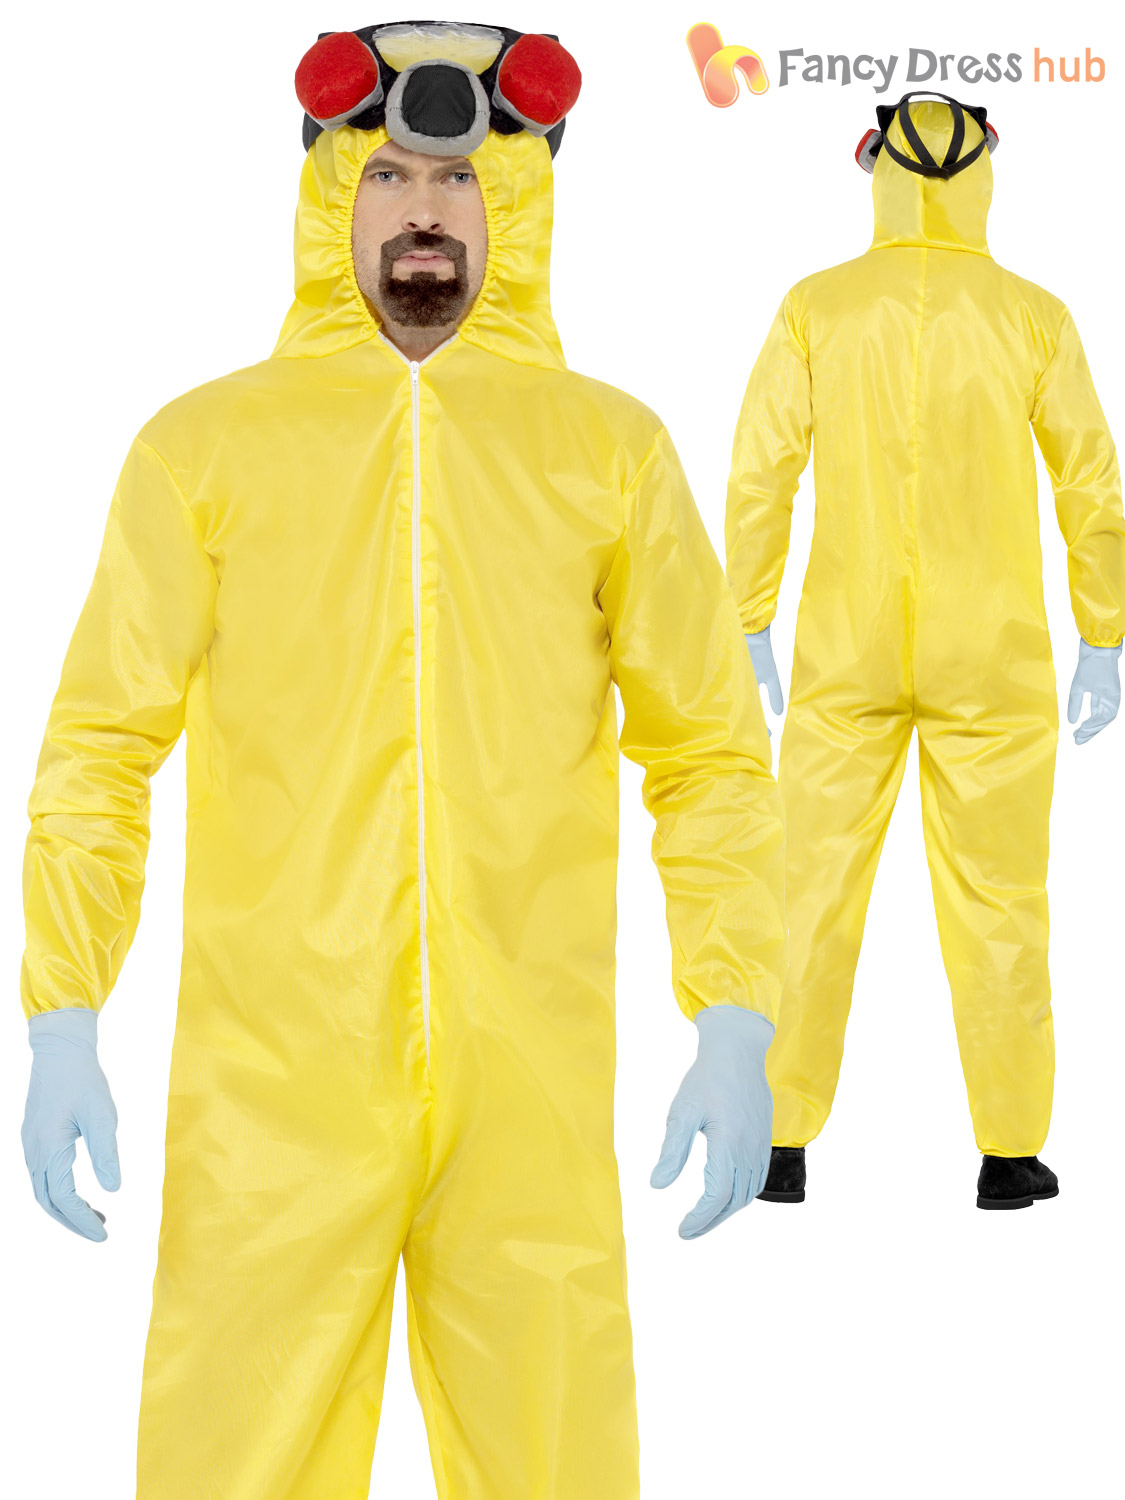 female walter white costume - photo #8